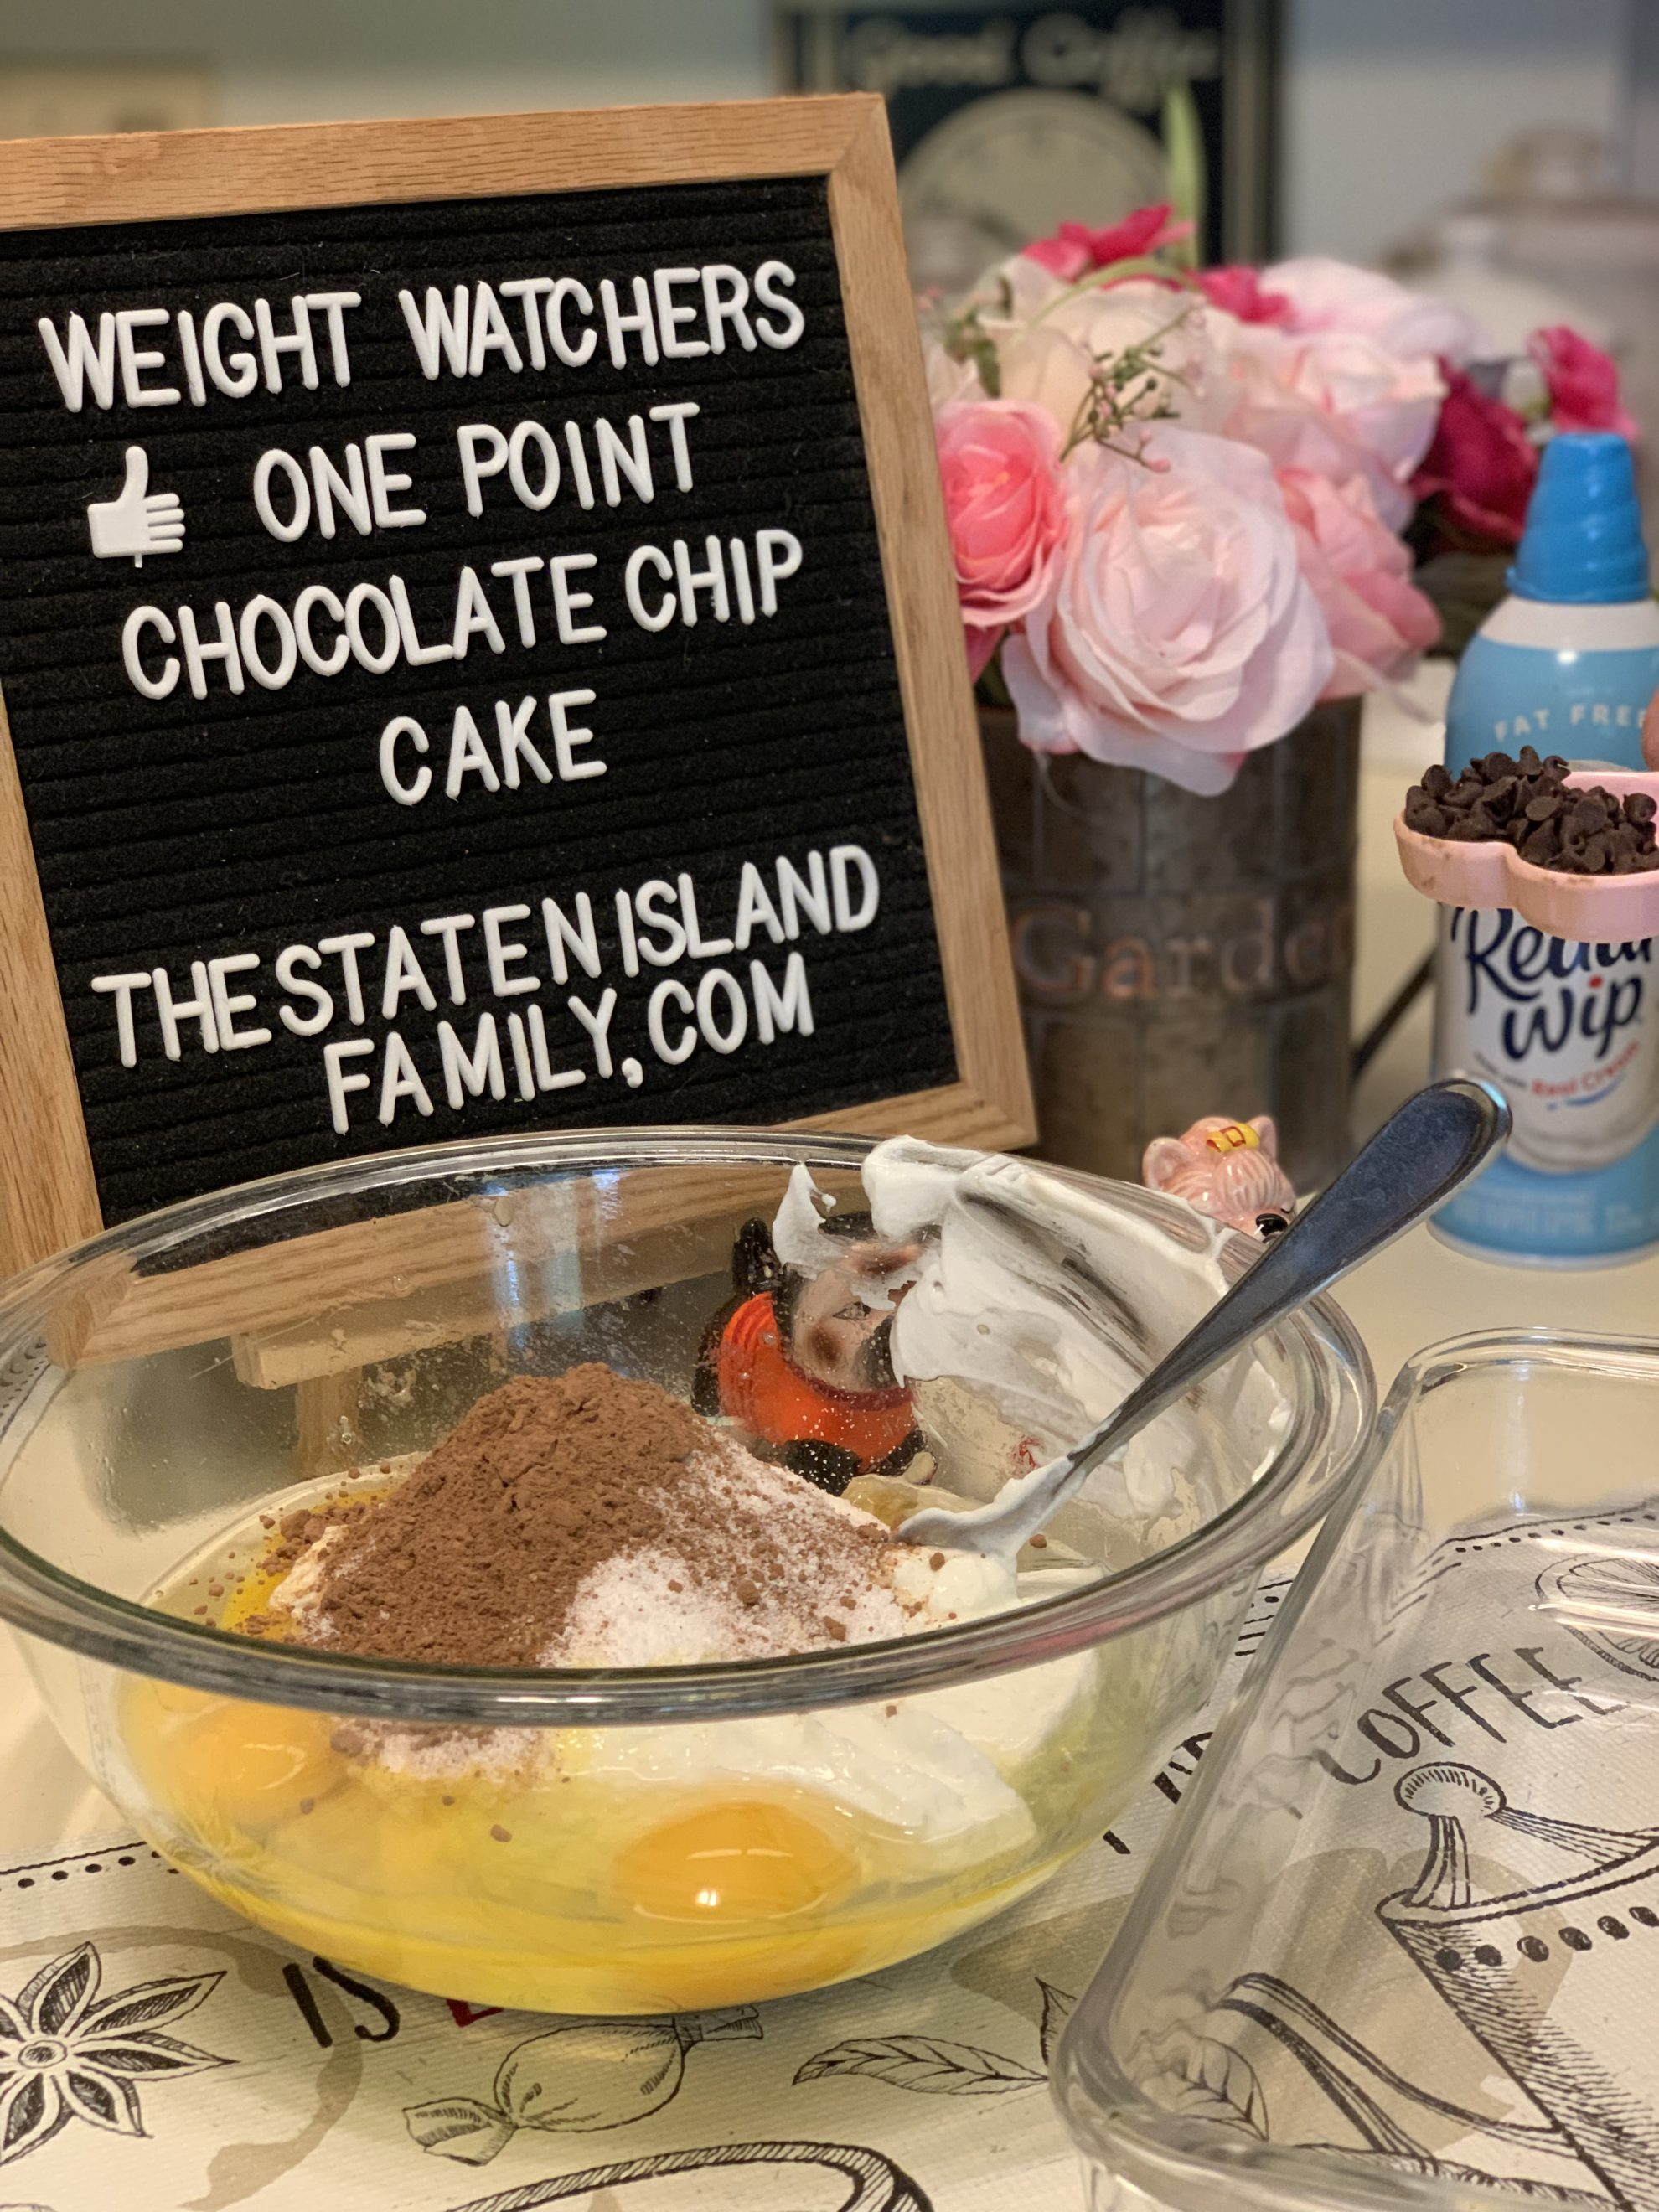 Weight Watchers One Point Chocolate Chip Cake